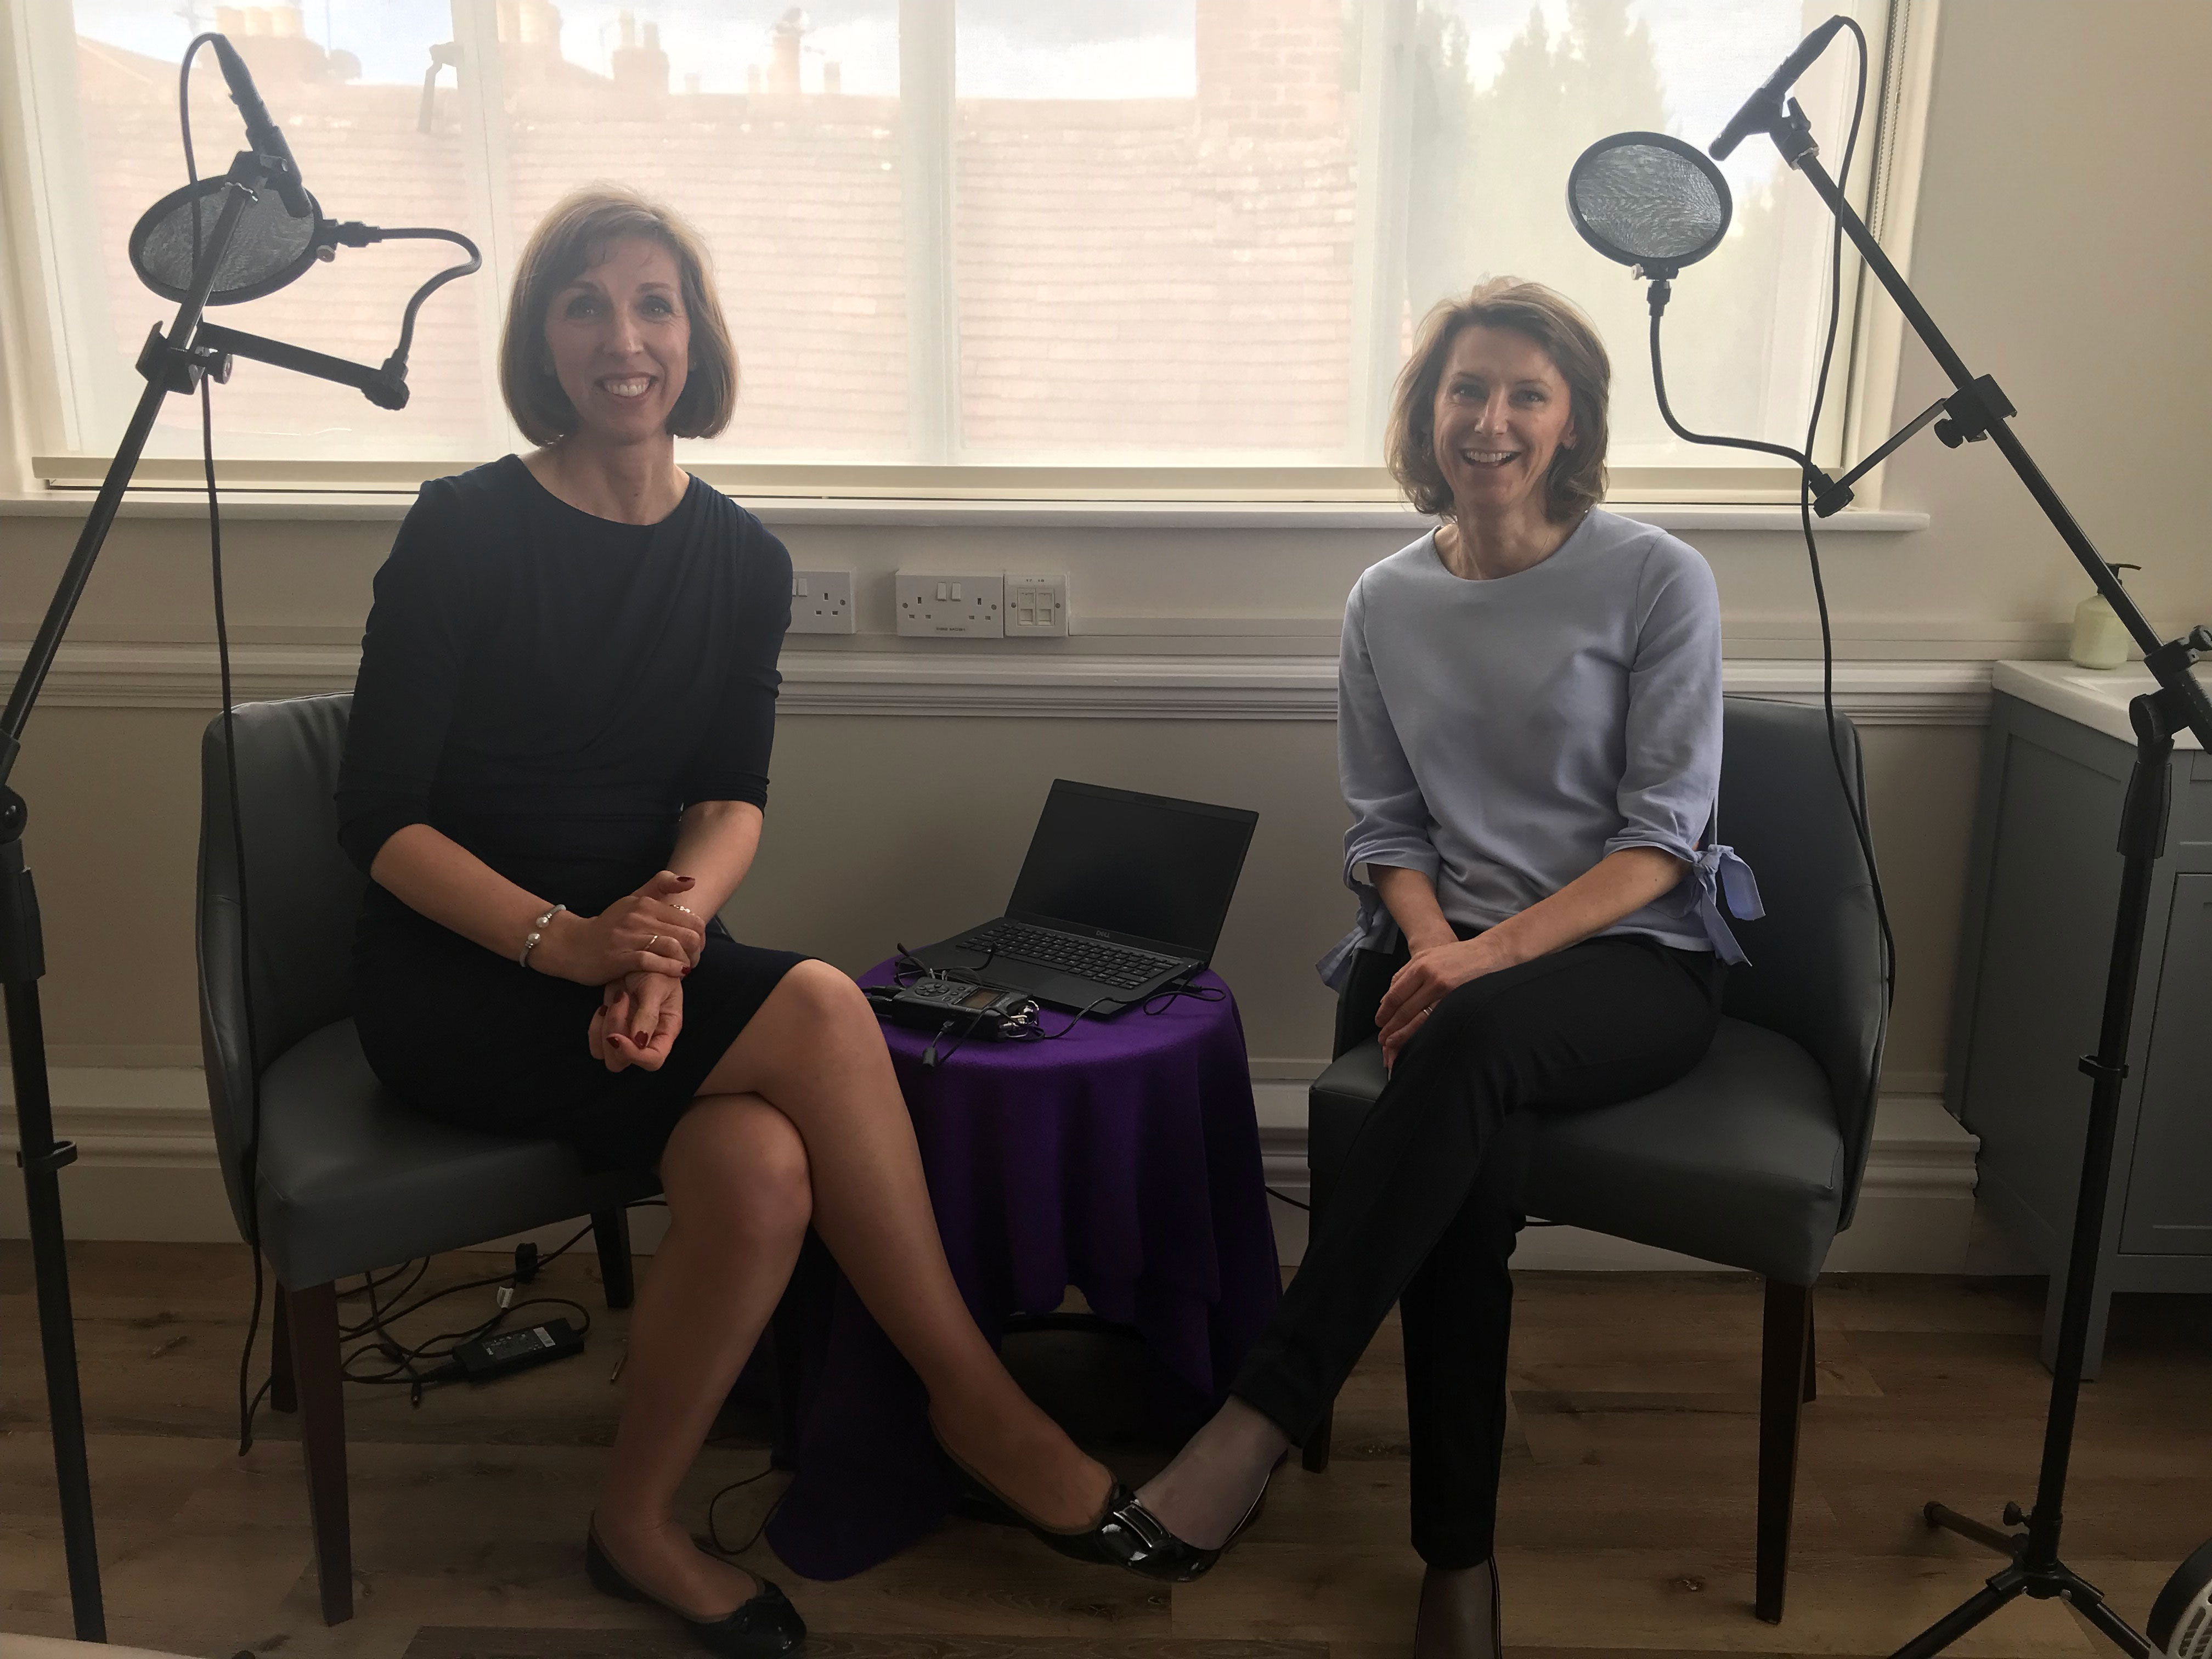 003 Menopause & Depression - GP & Menopause Expert Dr Rebecca Lewis & Dr Louise Newson